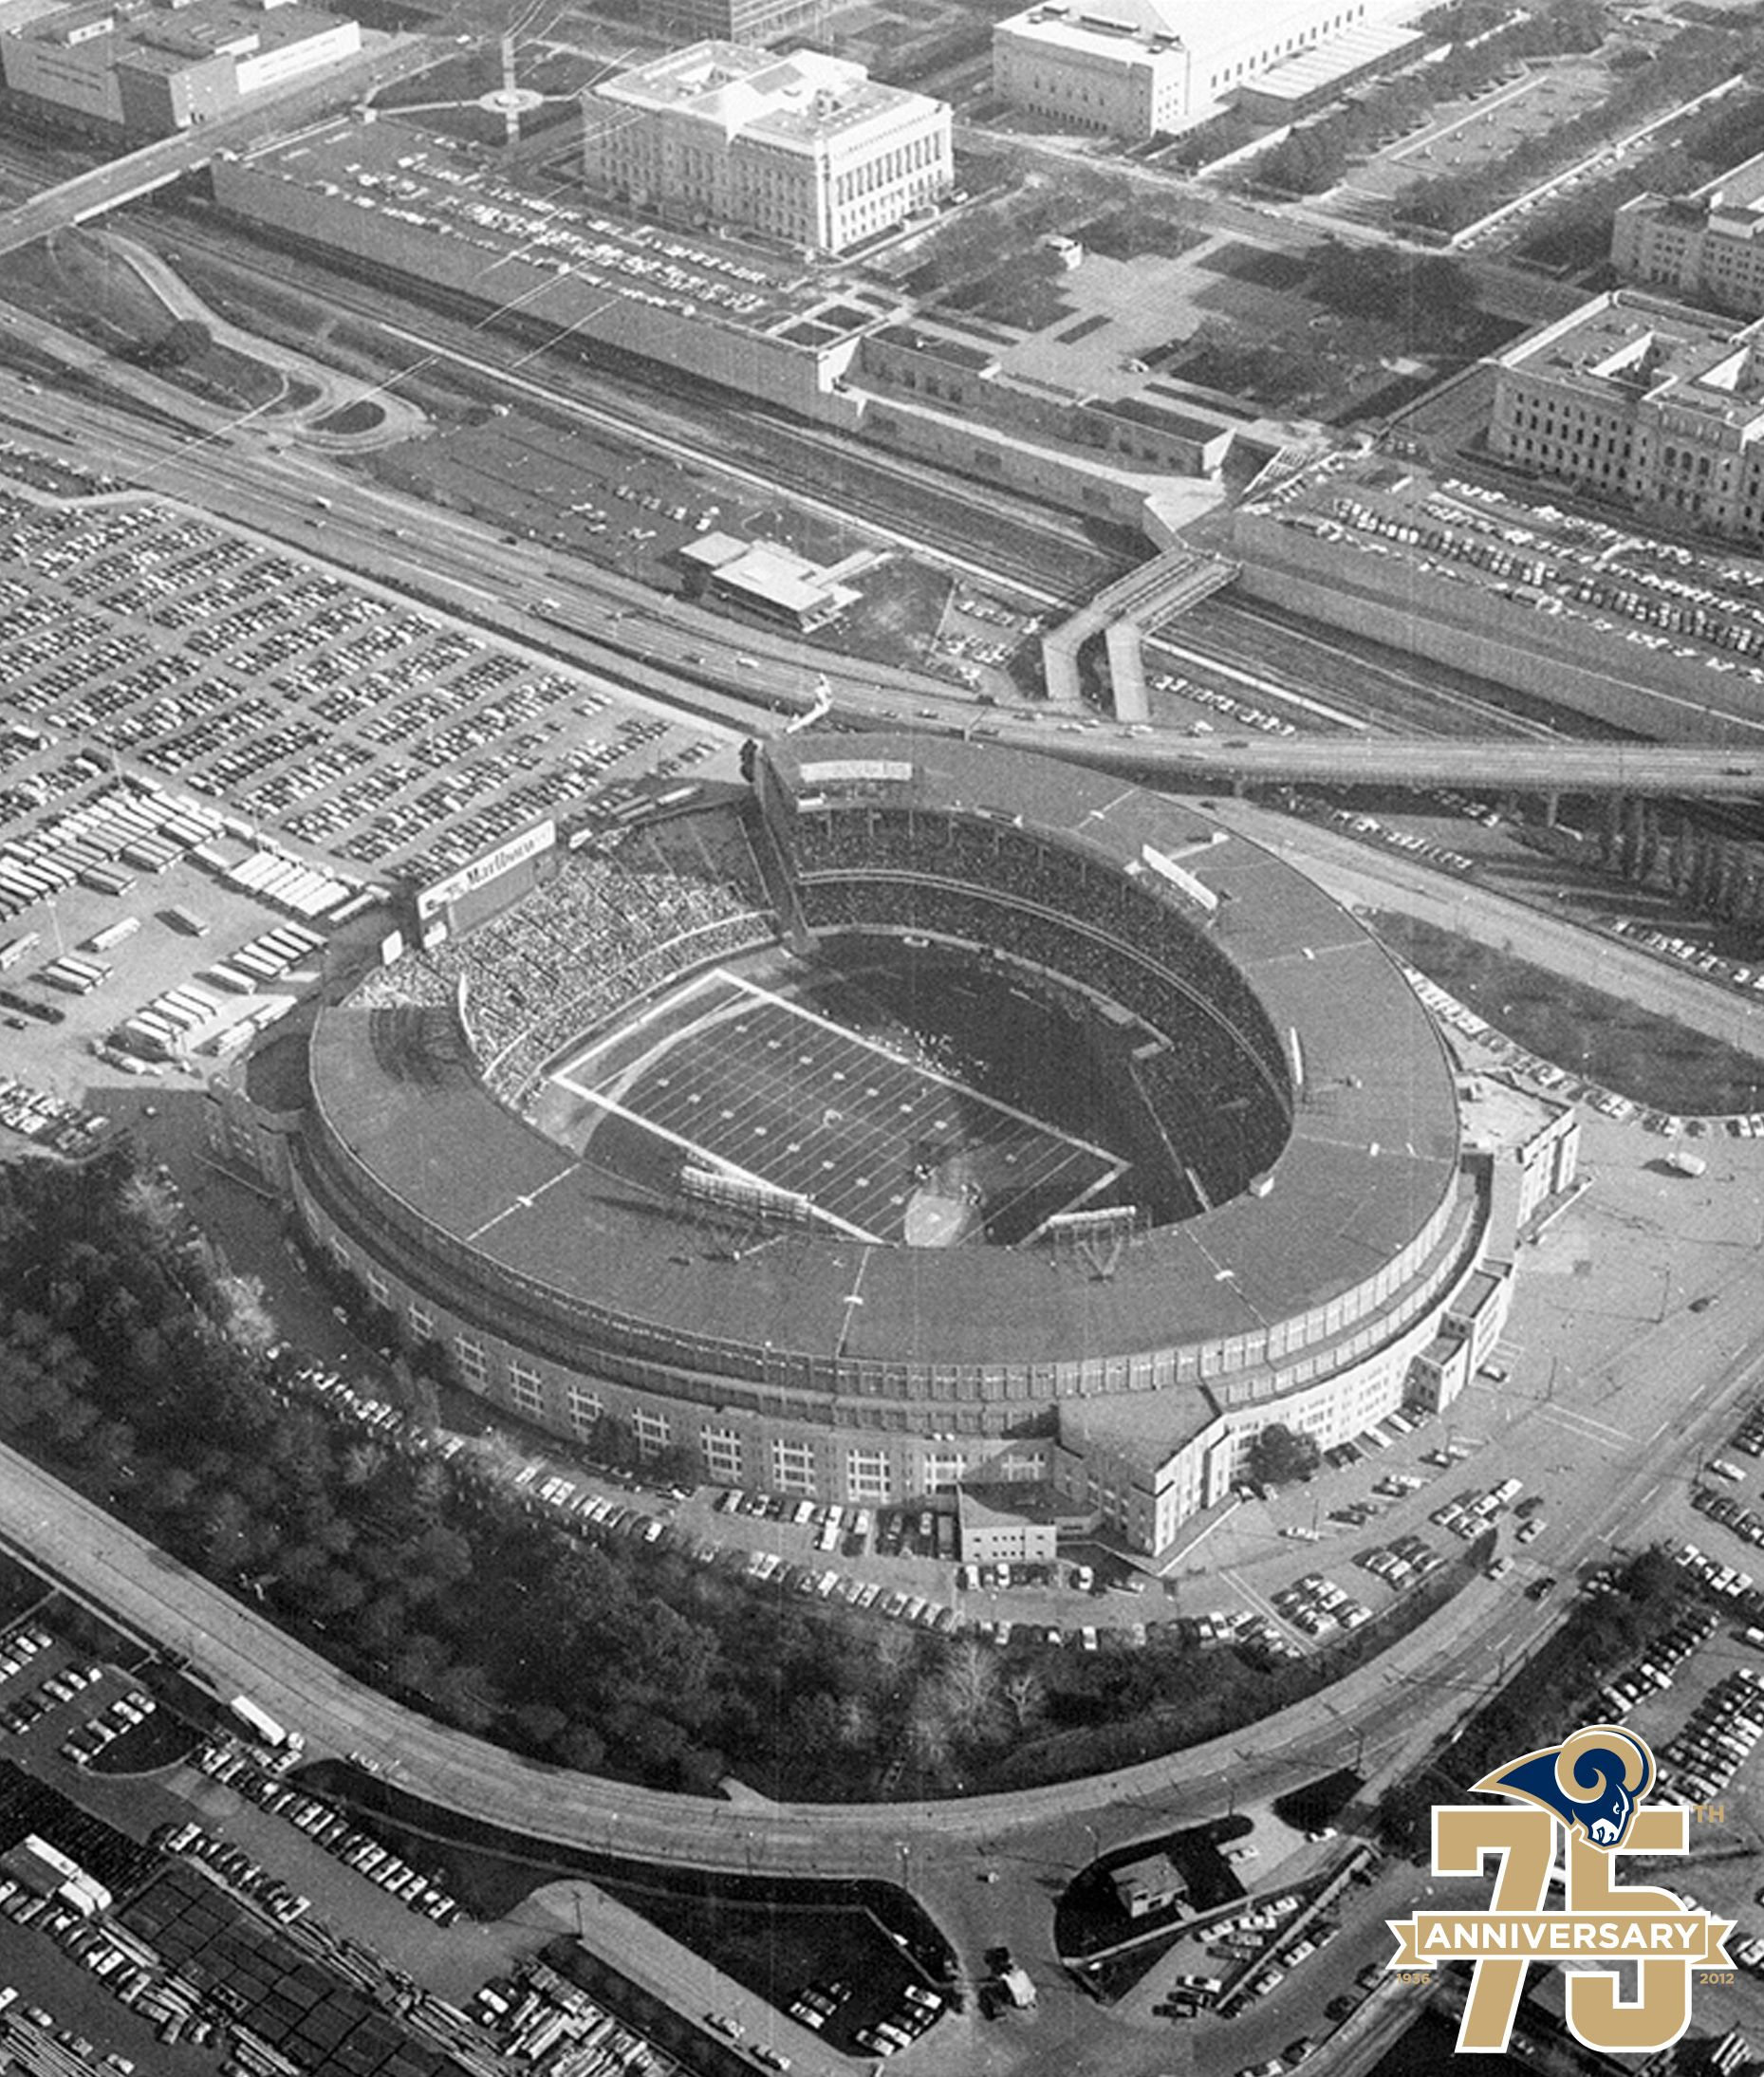 La Rams New Stadium: Long Before They Were The St. Louis Rams, The Cleveland